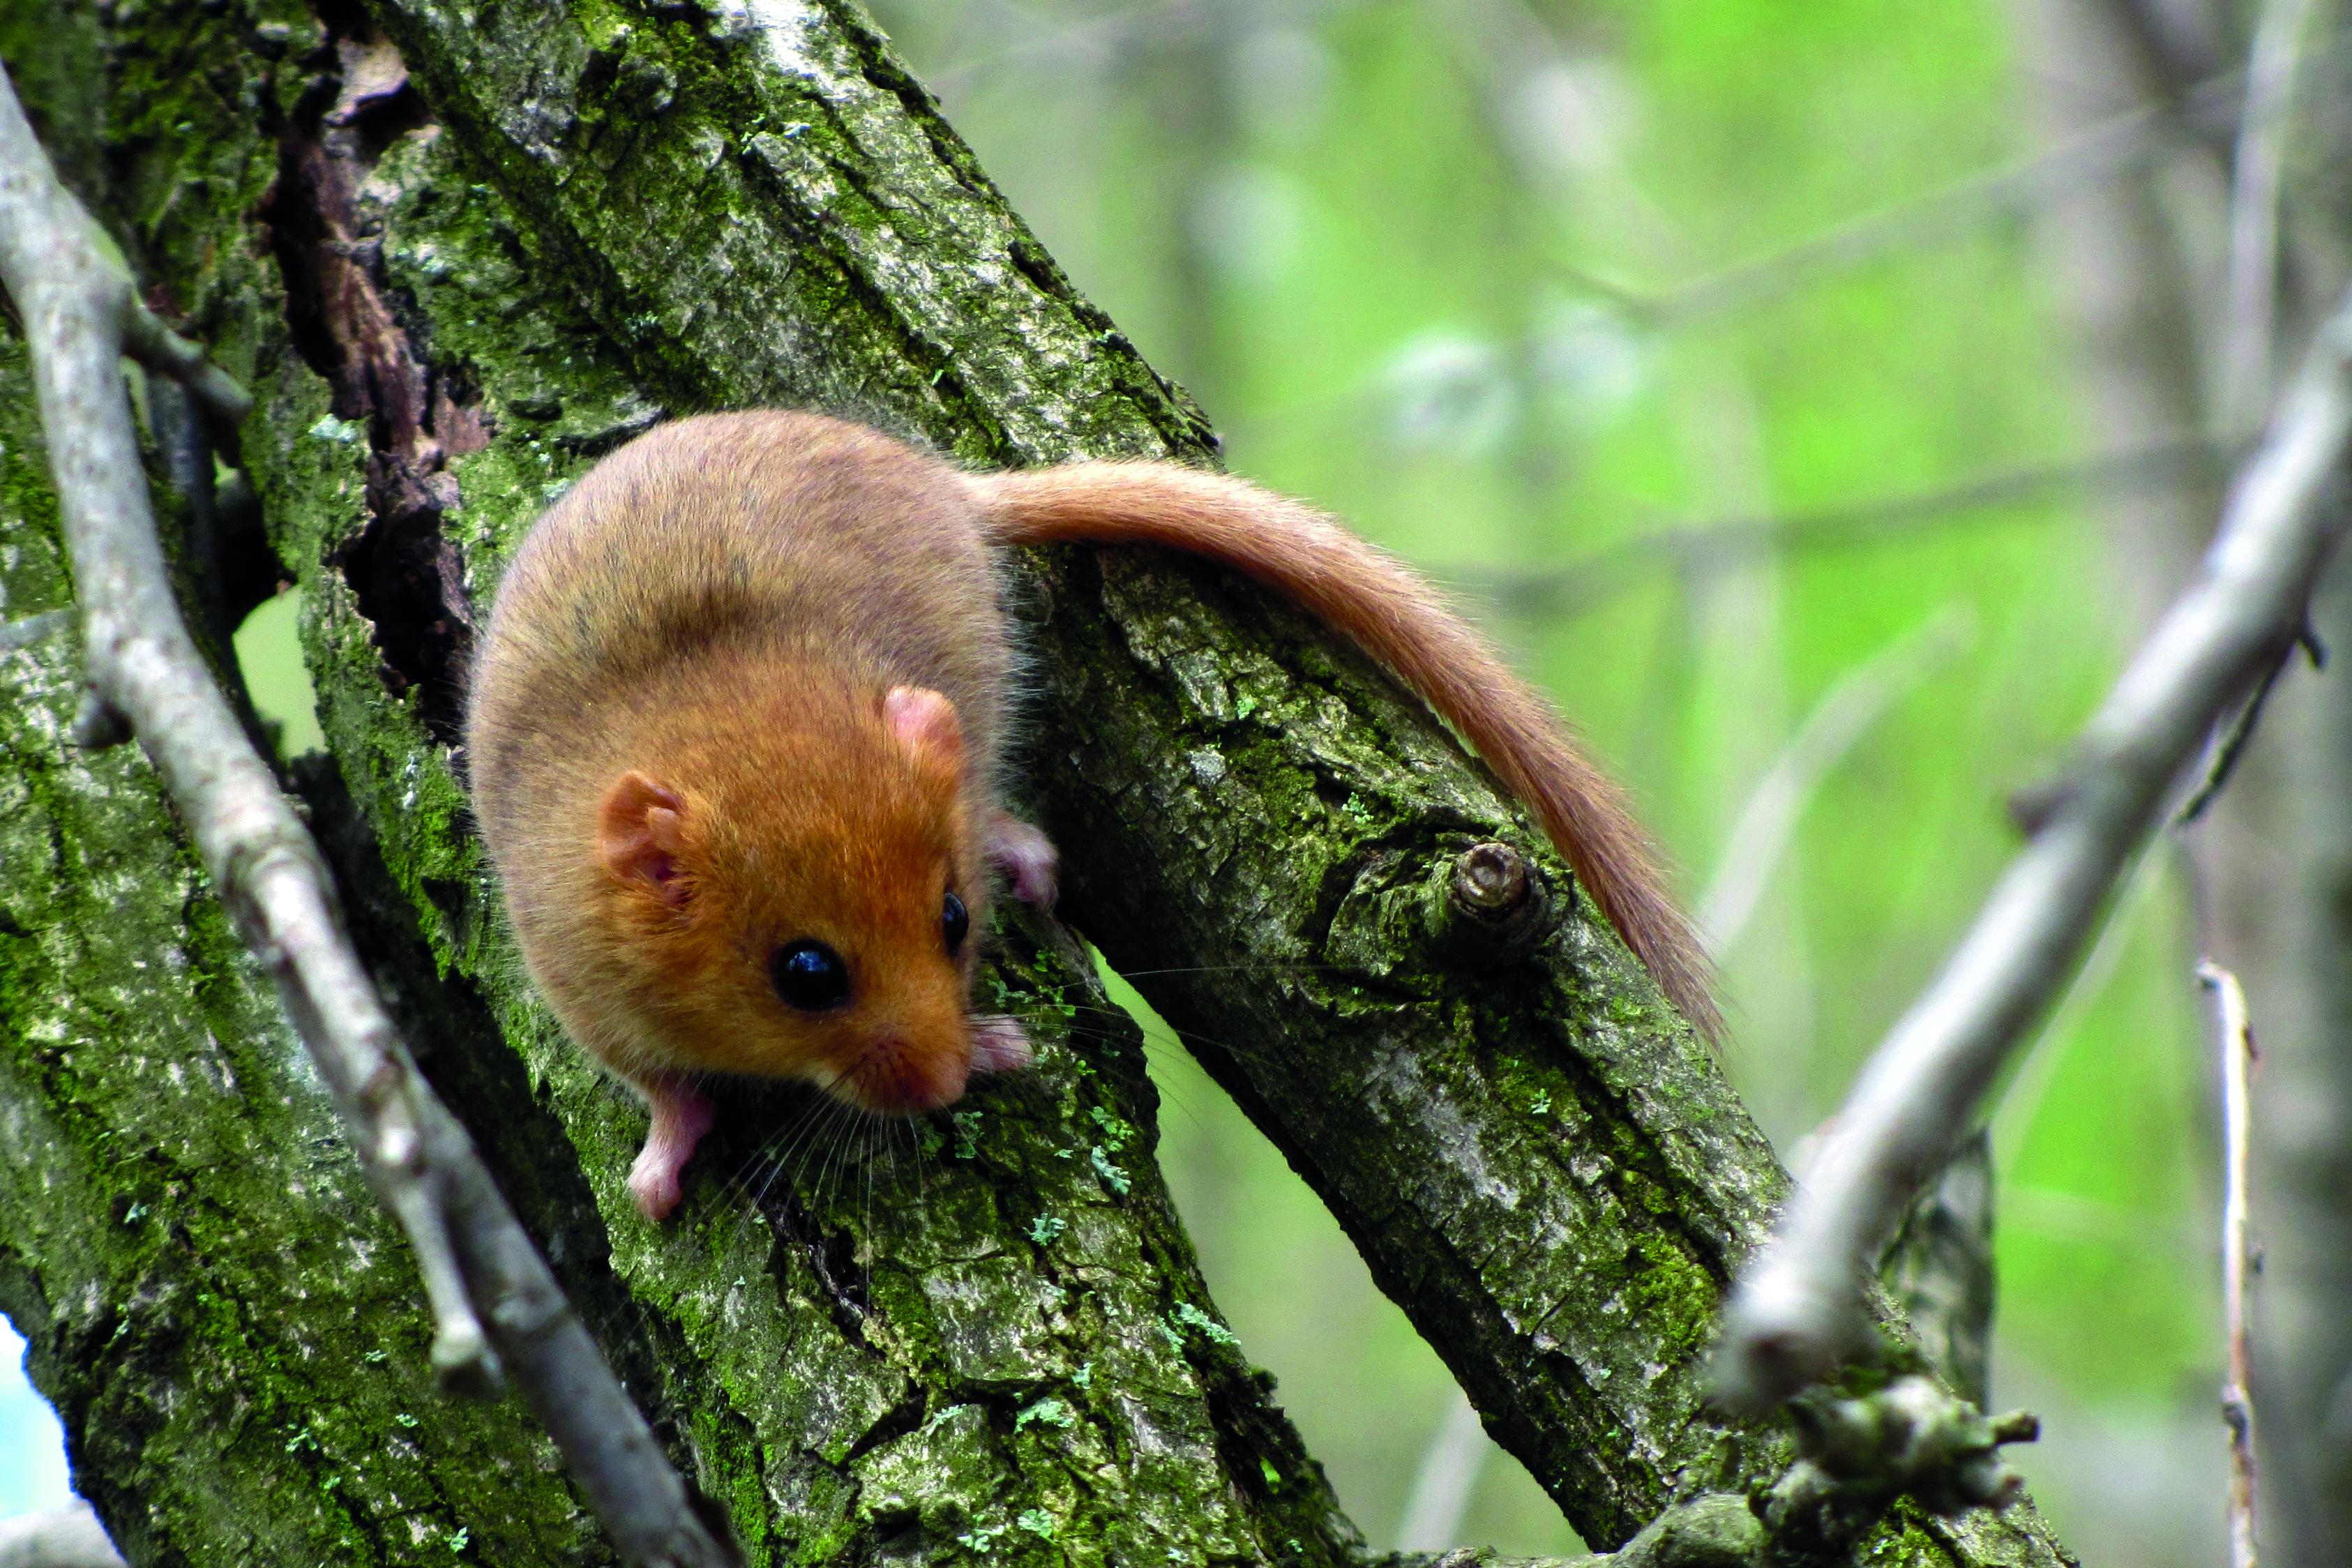 The British Dormouse